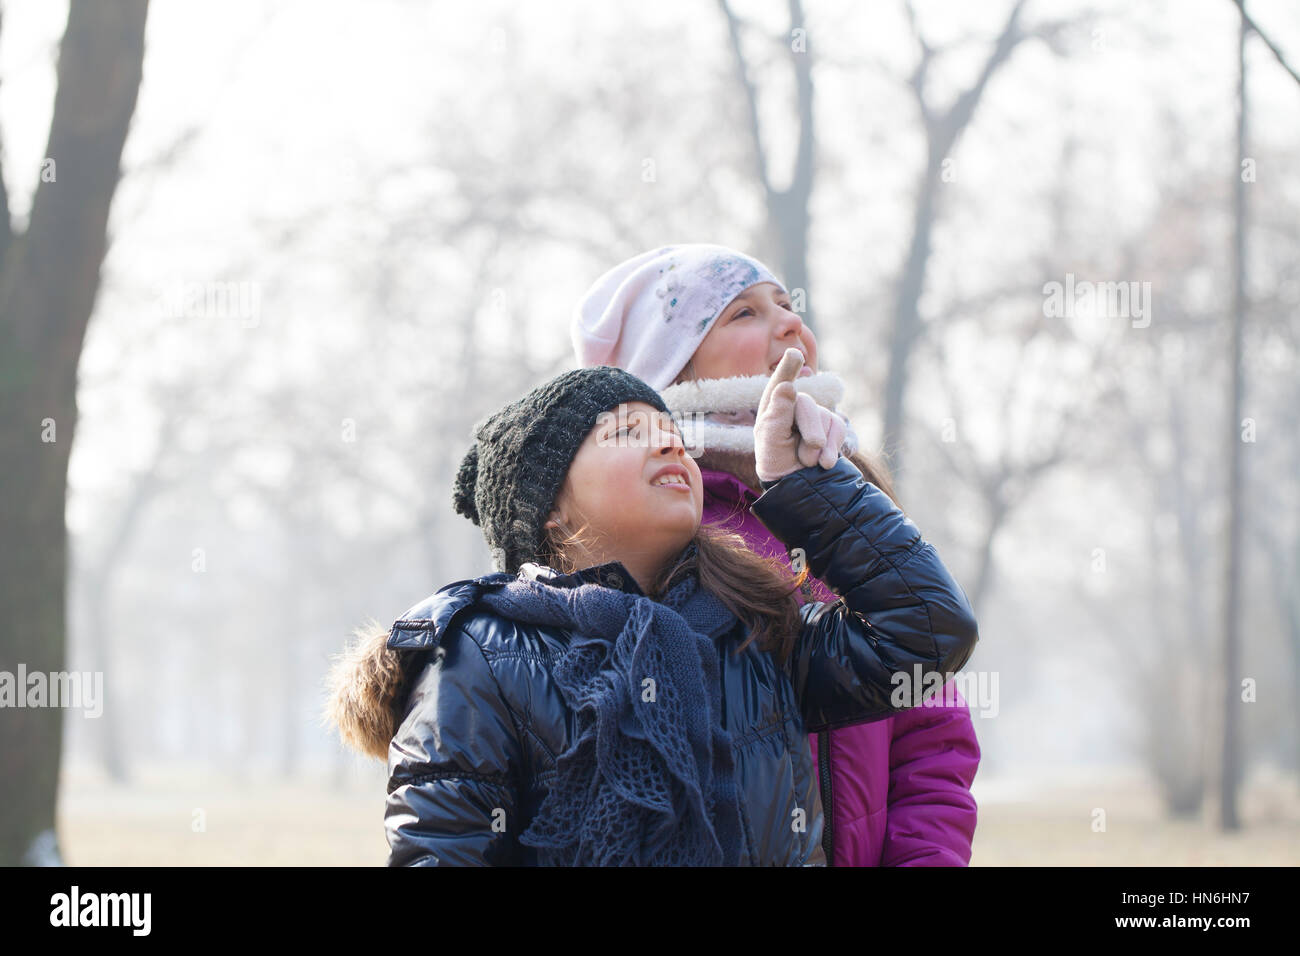 Two little girls with caps and scarves play, selective focus and small depth of field - Stock Image